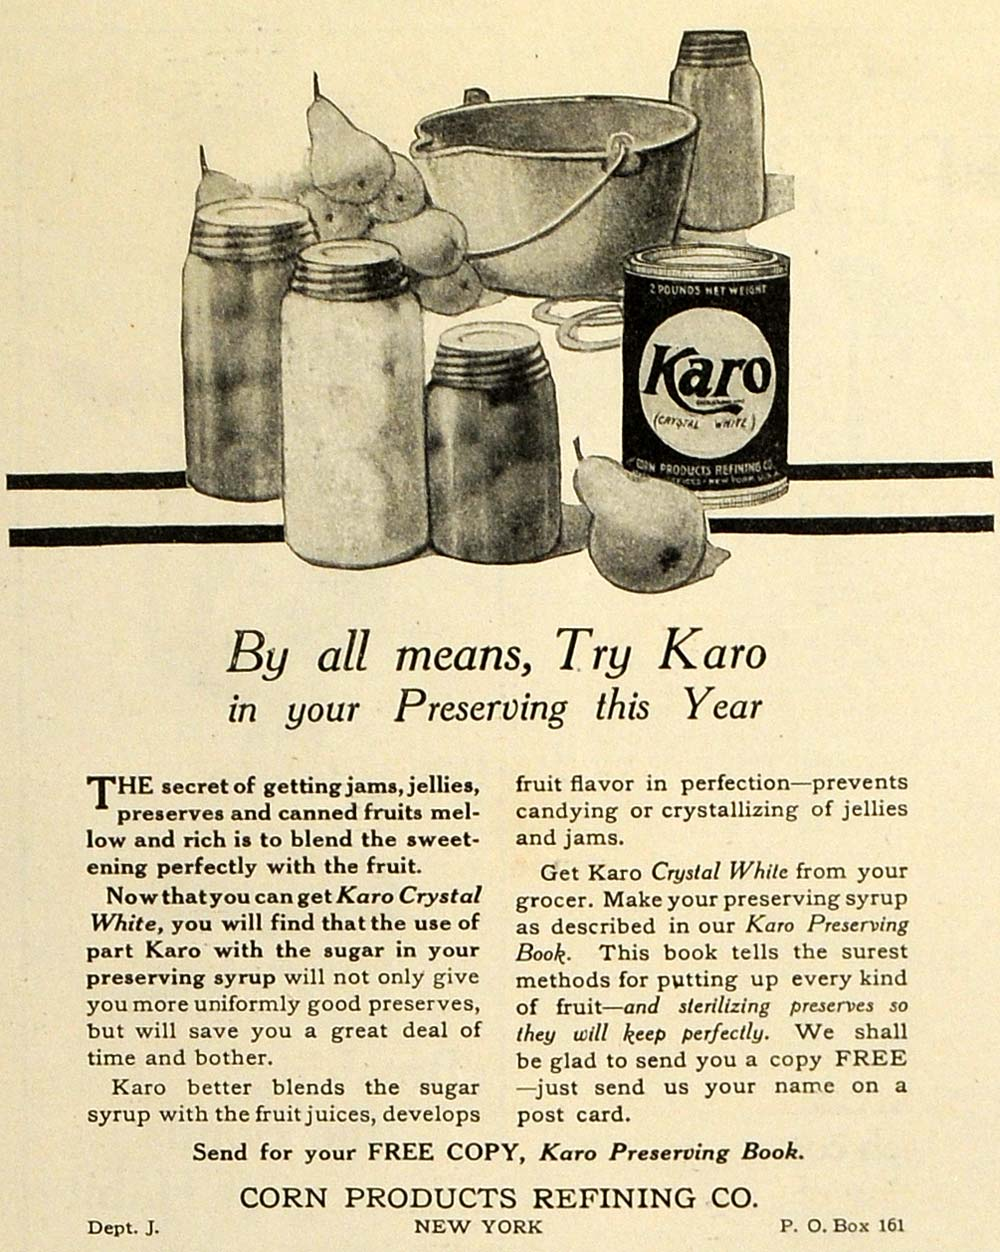 1913 Ad Corn Product Refining Karo Crystal White Food Preservation Fruit TLW1